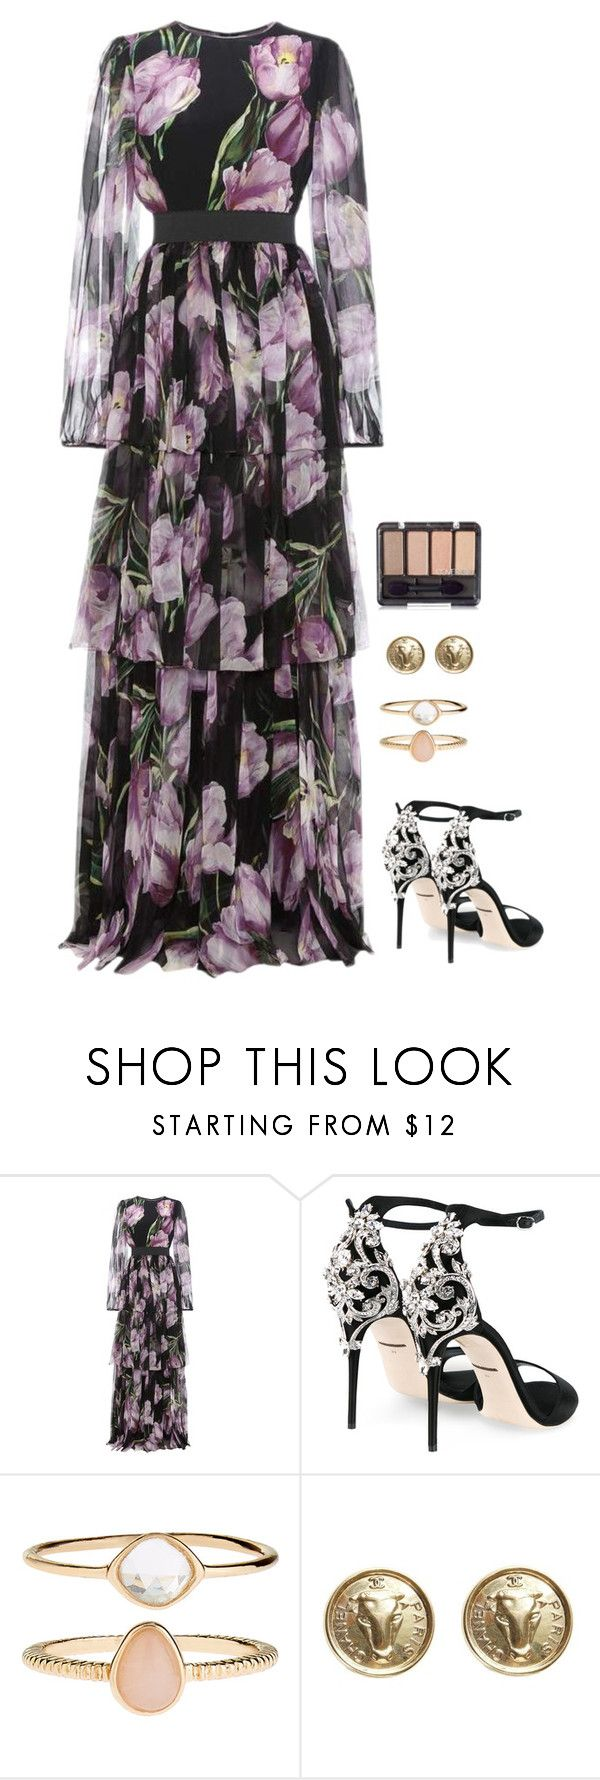 """""""Untitled #869"""" by h1234l on Polyvore featuring Dolce&Gabbana, Accessorize and Chanel"""